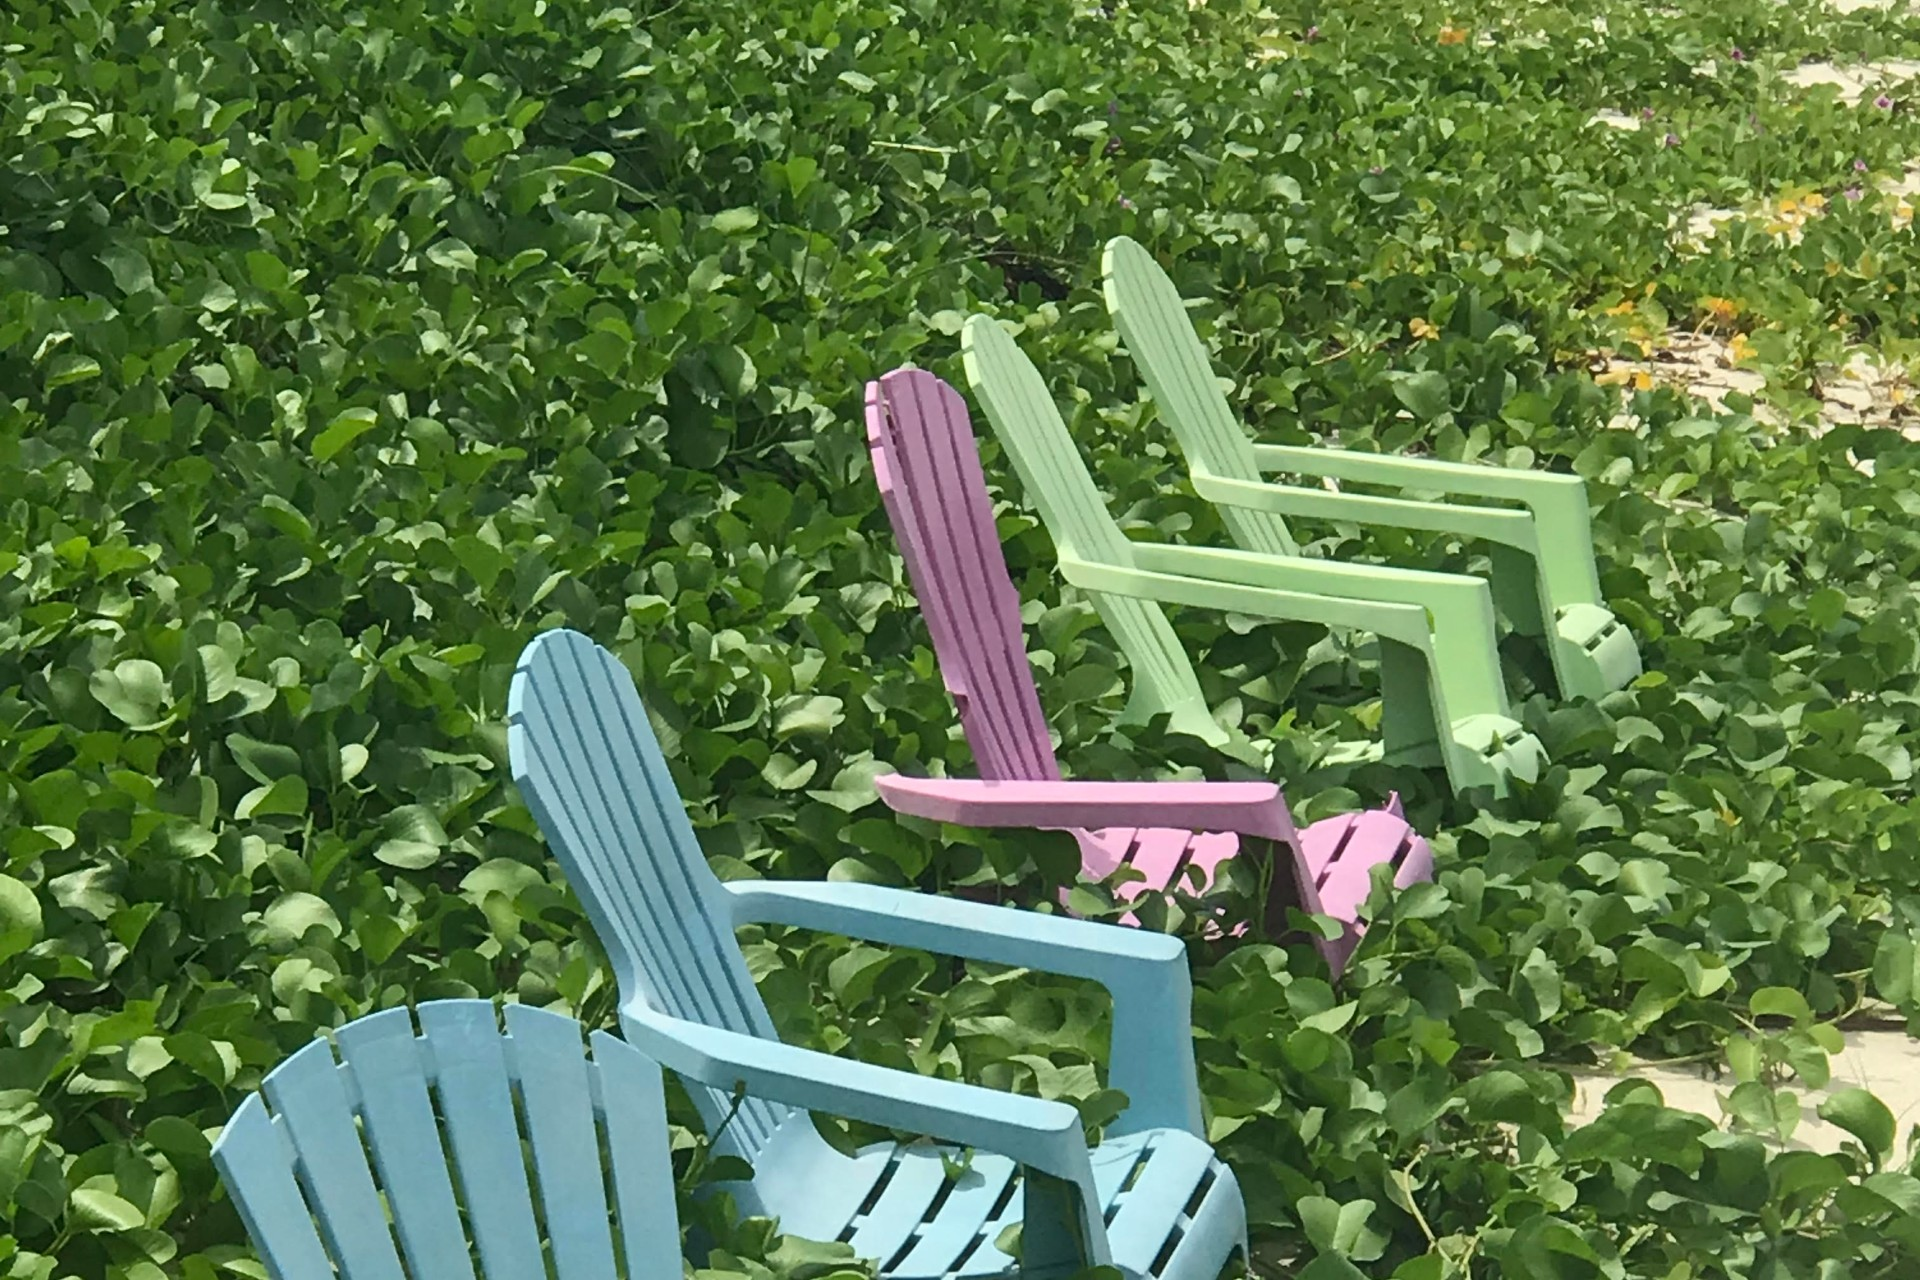 blue, pink, and green beach chairs in the sand with a vine growing over them